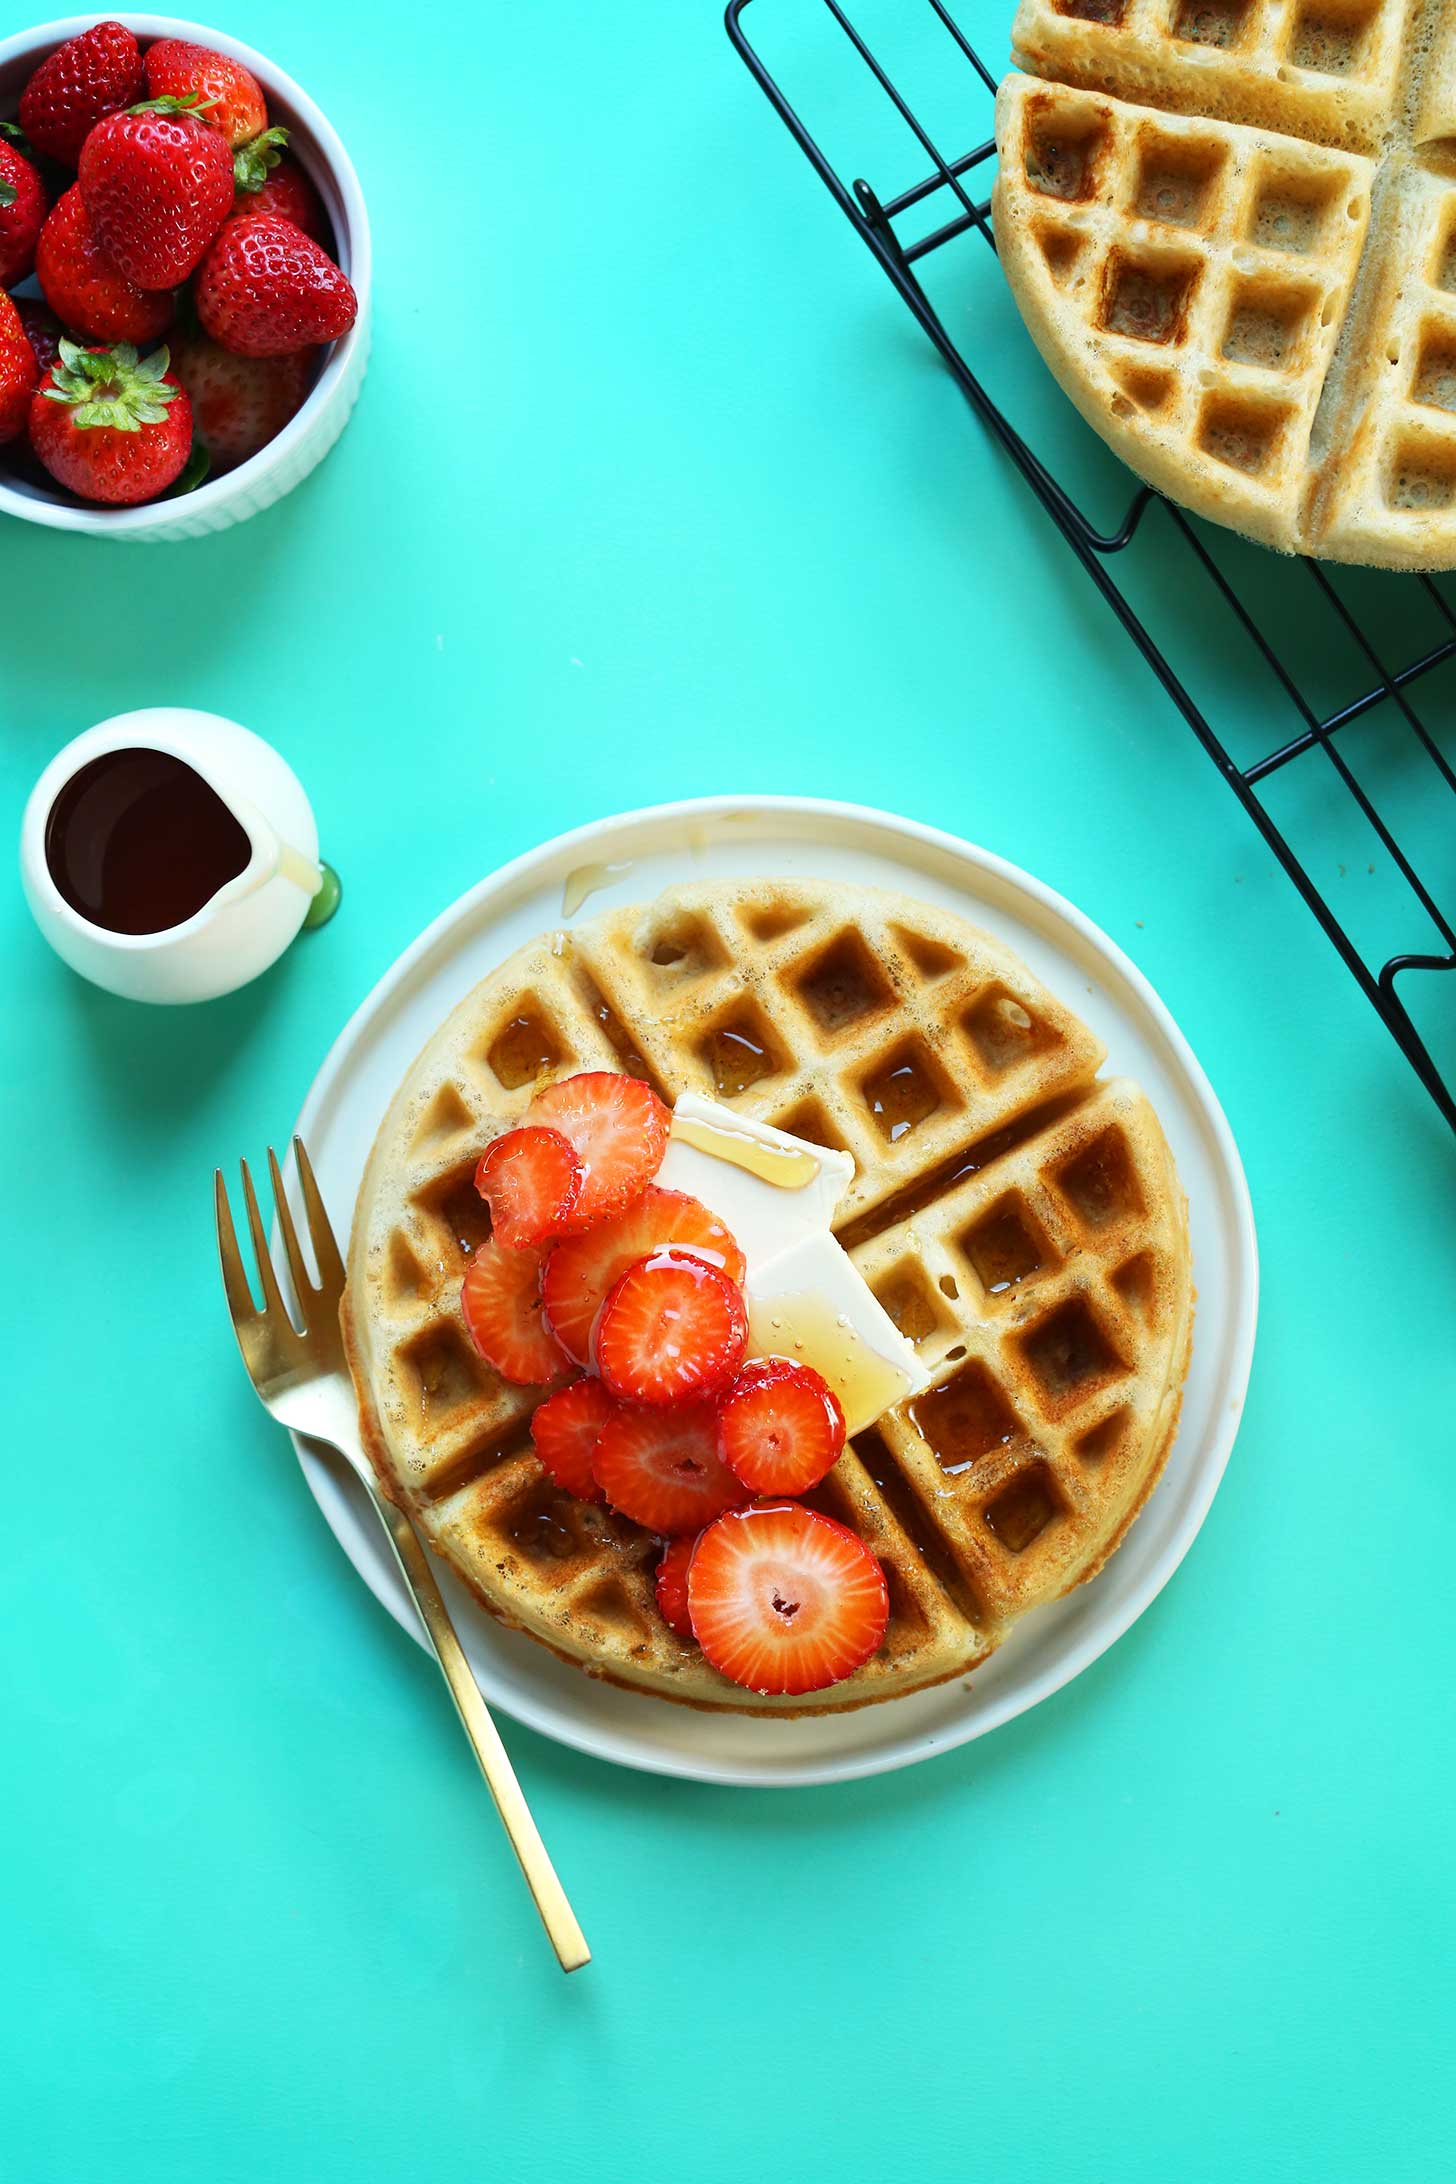 Plate with the perfect Vegan Gluten-Free Waffle topped with syrup, vegan butter, and fresh strawberries